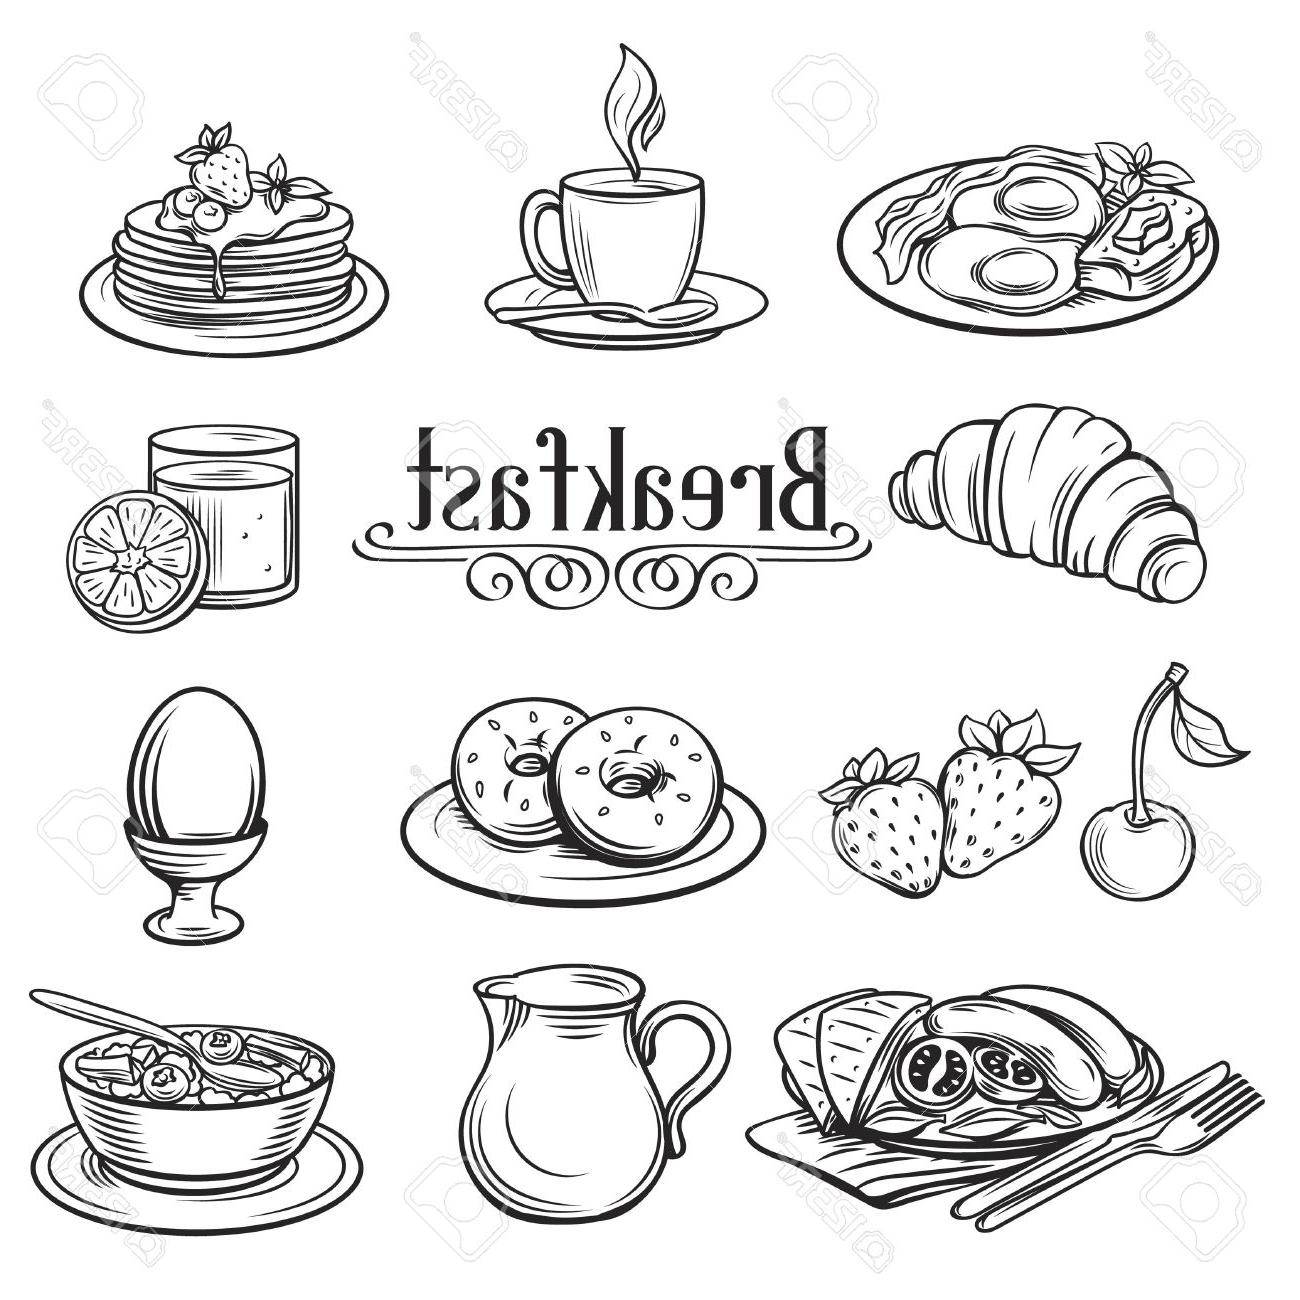 Breakfast Food Coloring Pages At Getdrawings